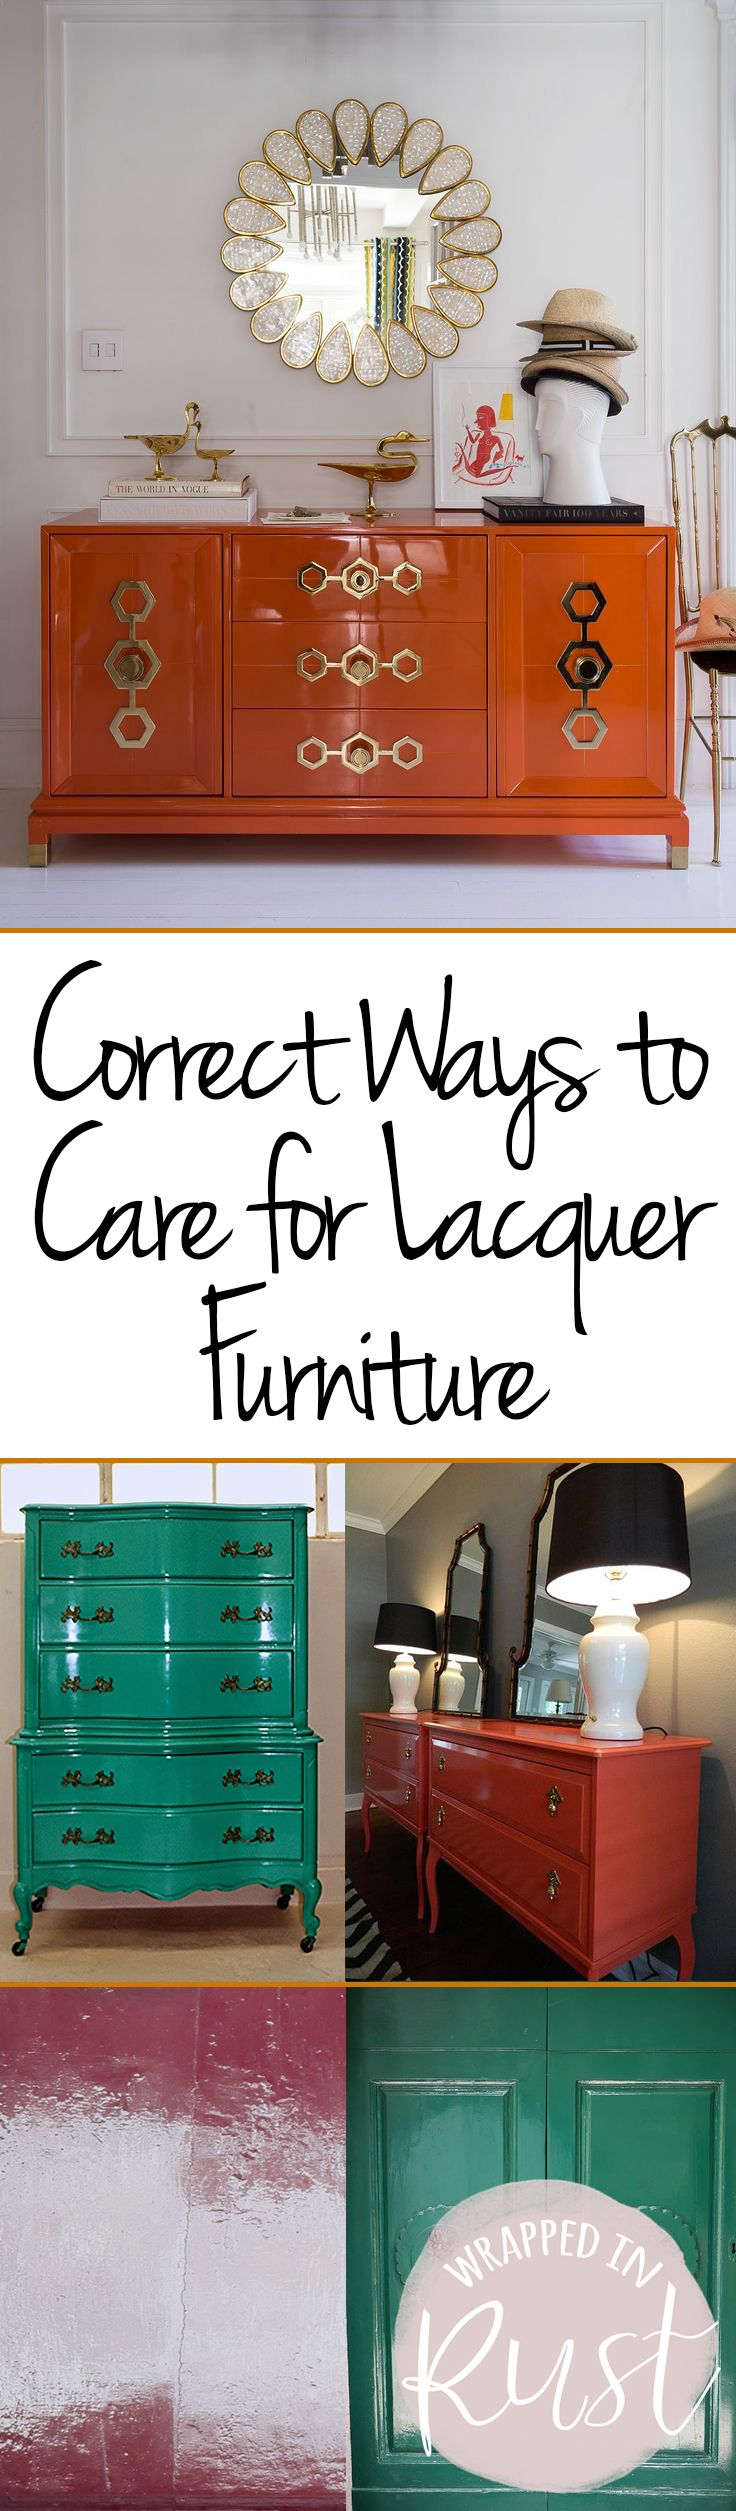 Correct Ways to Care for Lacquer Furniture| Caring for Furniture, How to Care for Lacquer, Caring for Lacquer, Furniture, Furniture Hacks, Furniture Care. #CaringforFurniture #Furniture #FurnitureCareTips